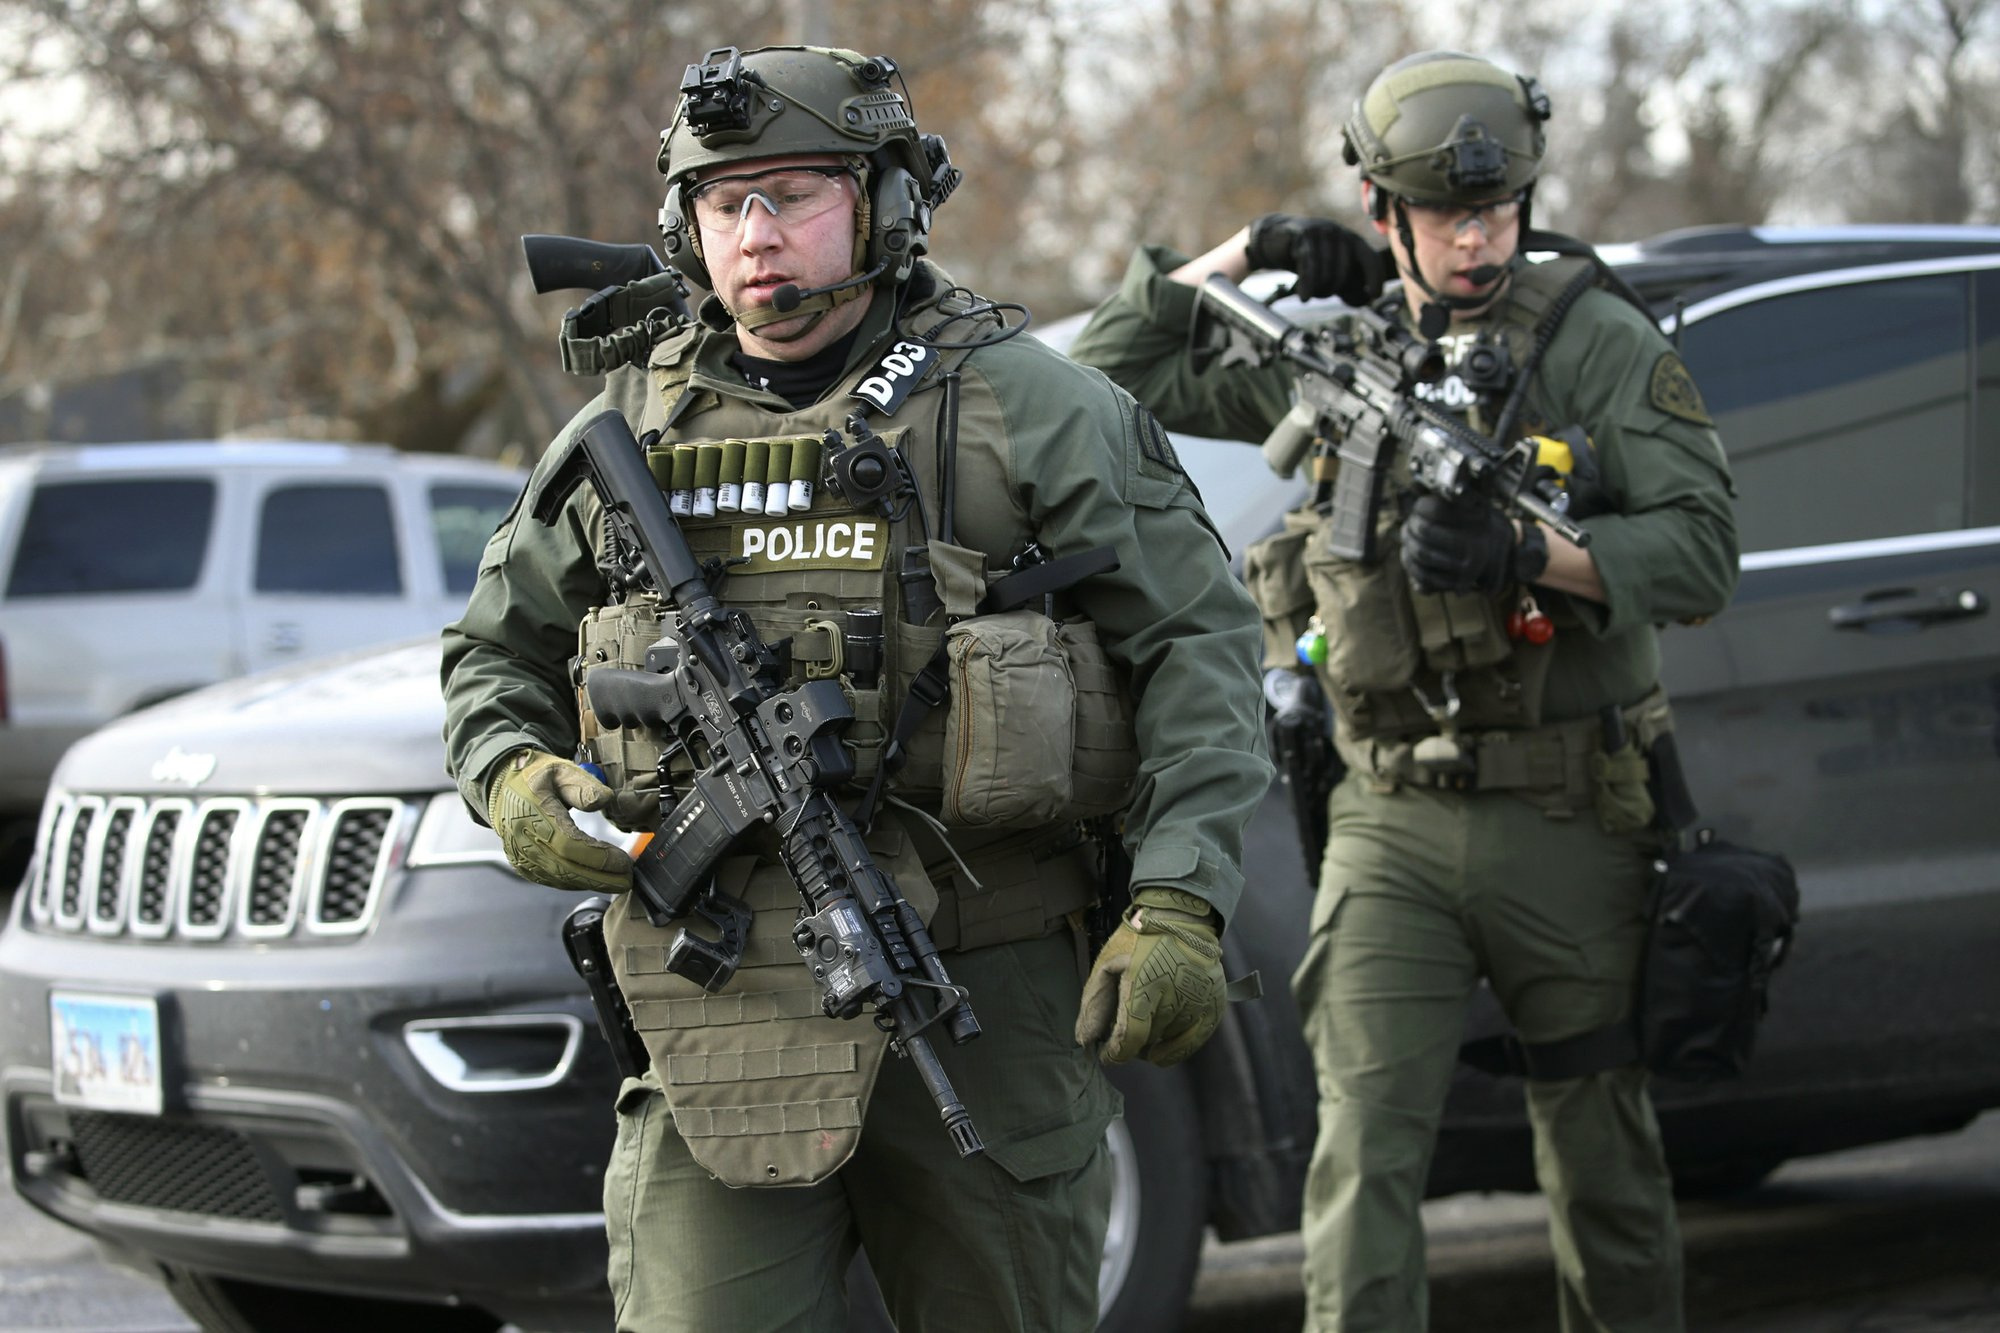 5 killed in a shooting in Chicago suburb